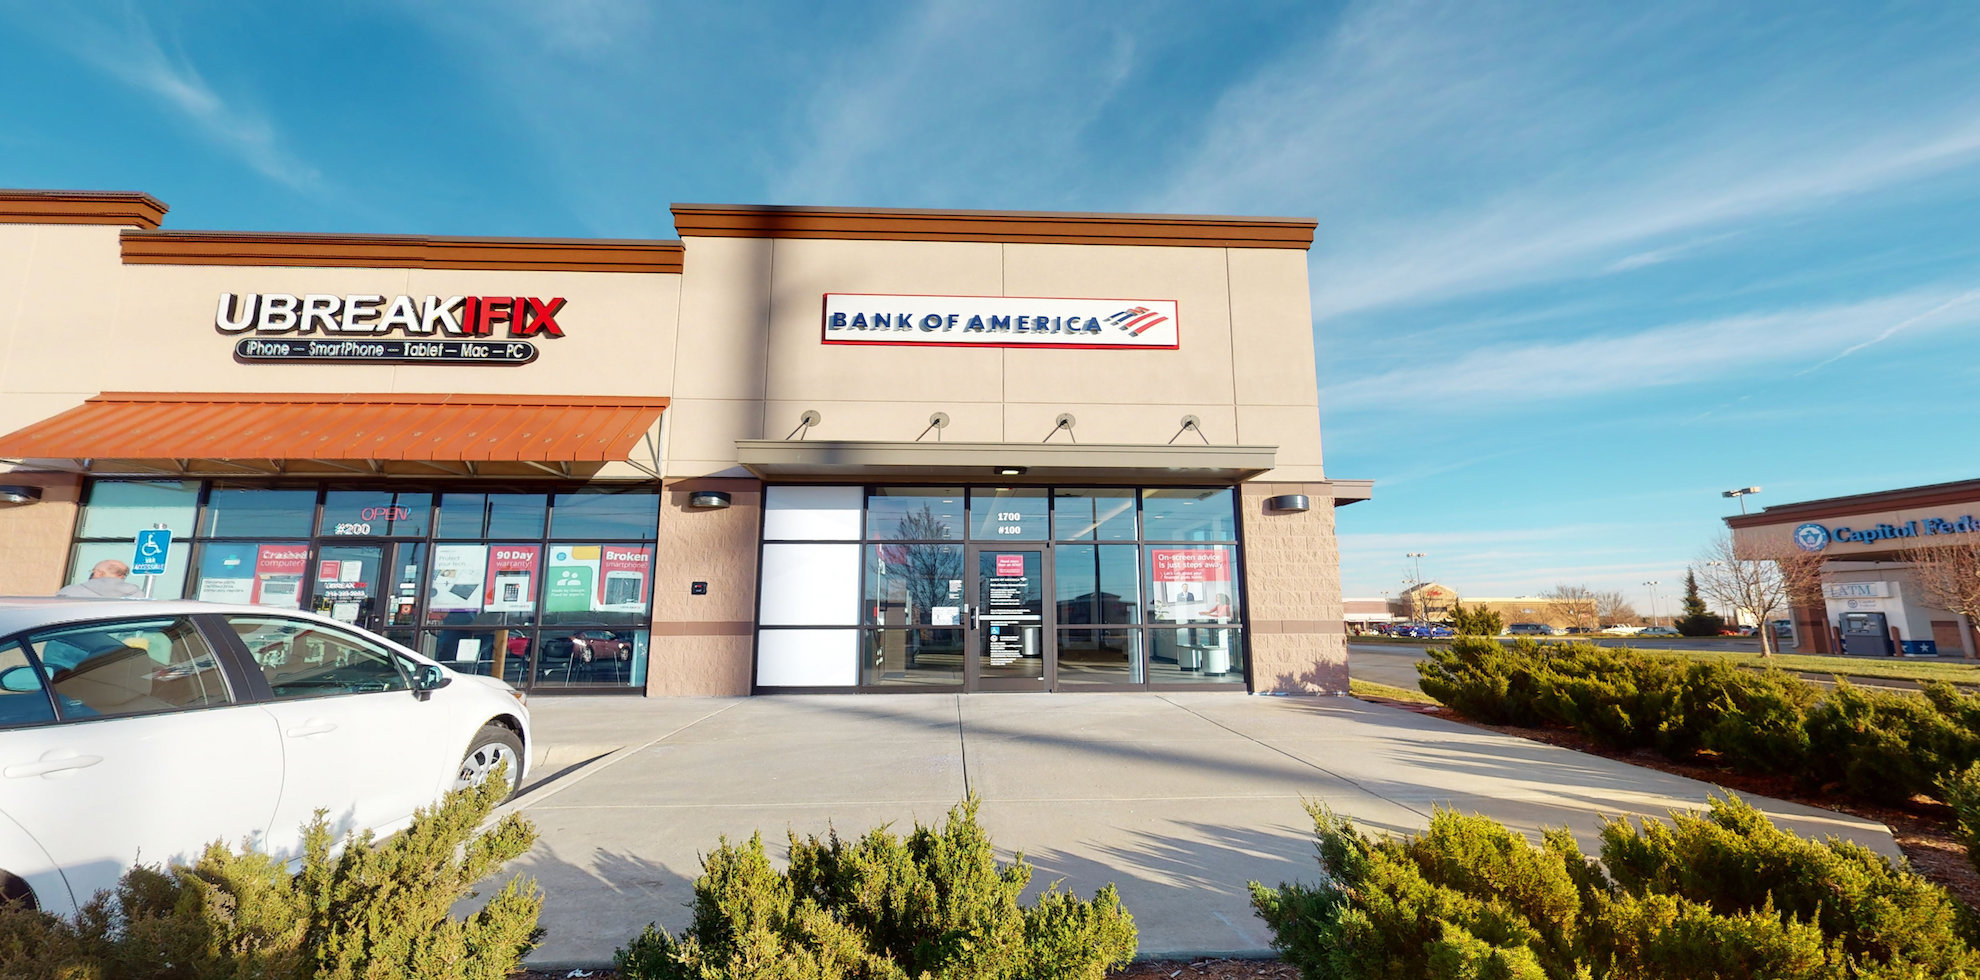 Bank of America Advanced Center with walk-up ATM | 1700 N Rock Rd STE 100, Derby, KS 67037